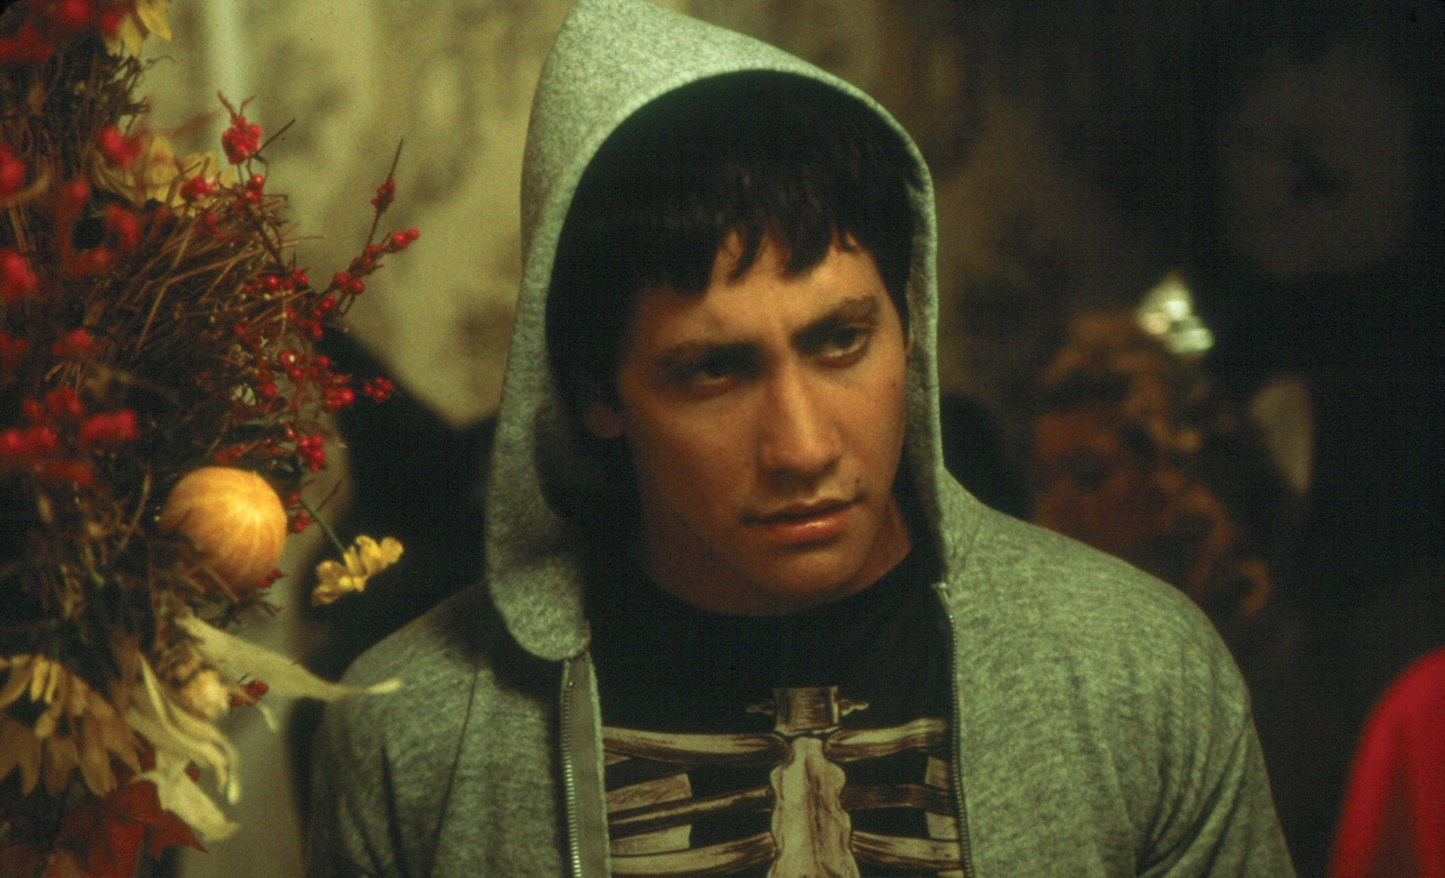 This 'Donnie Darko' fan has a new theory on what the movie's REALLY about